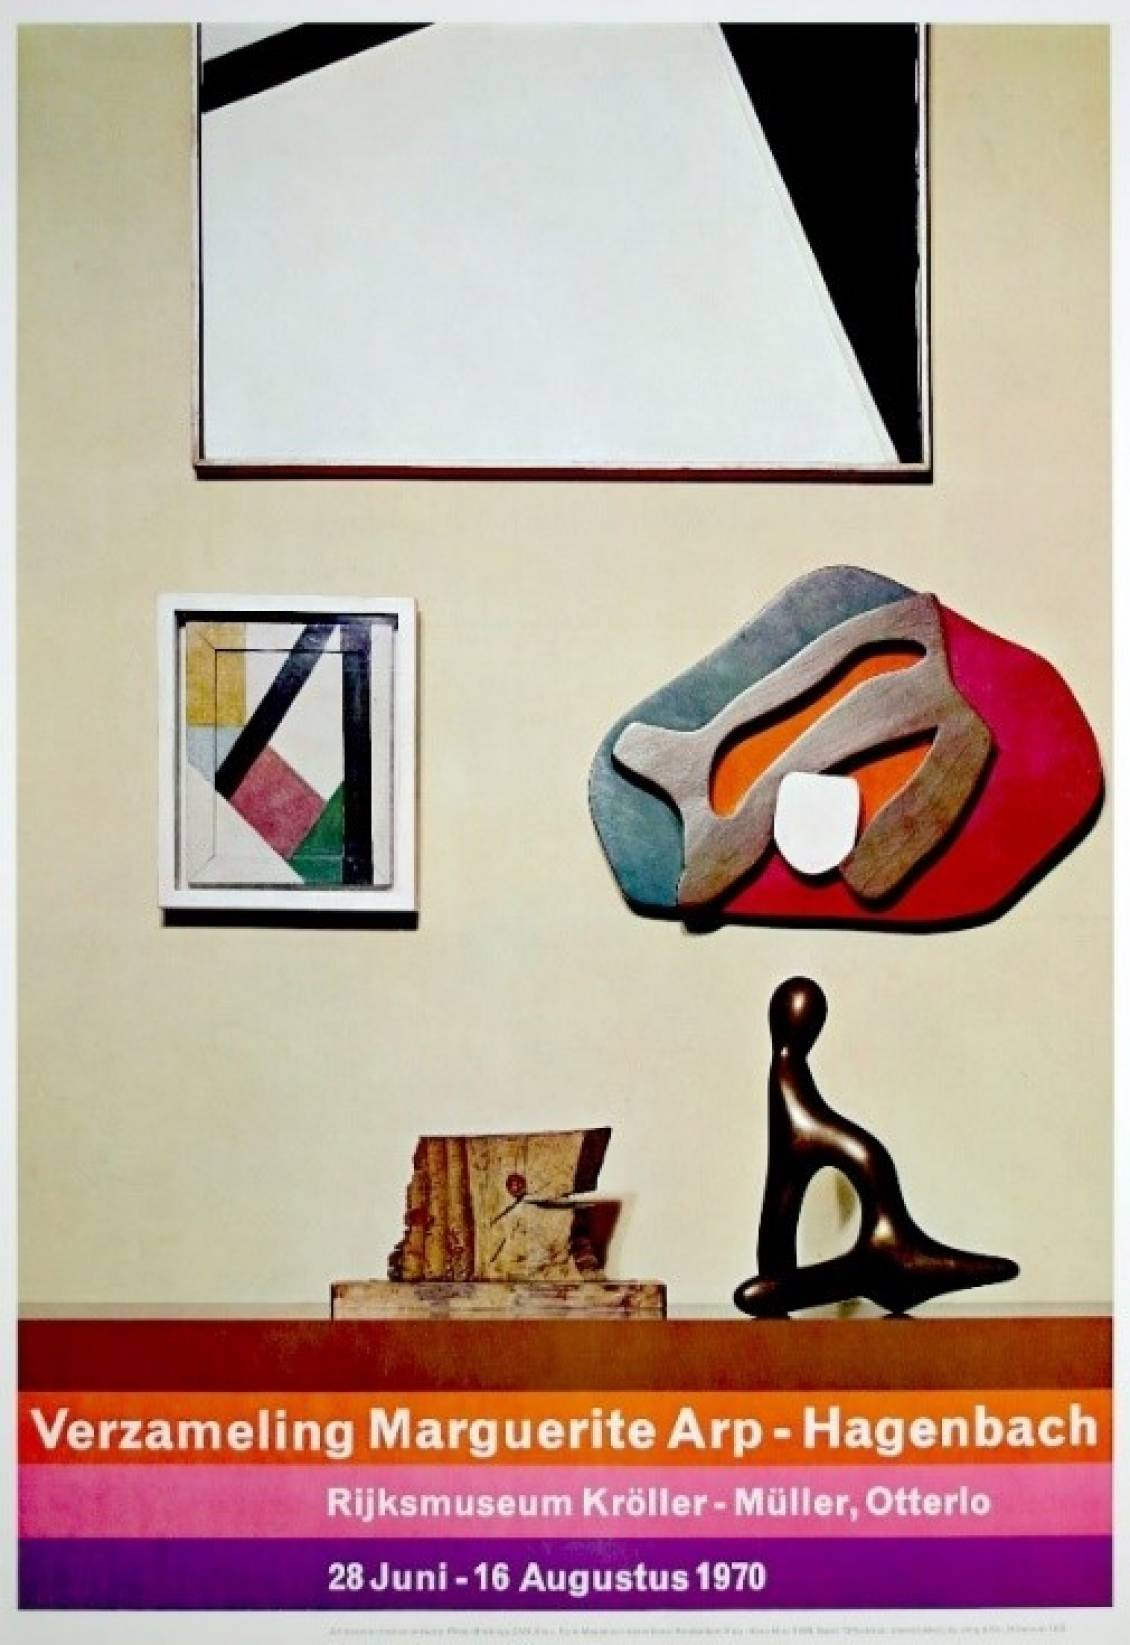 Poster Collection of Marguerite Arp-Hagenbach, 1970